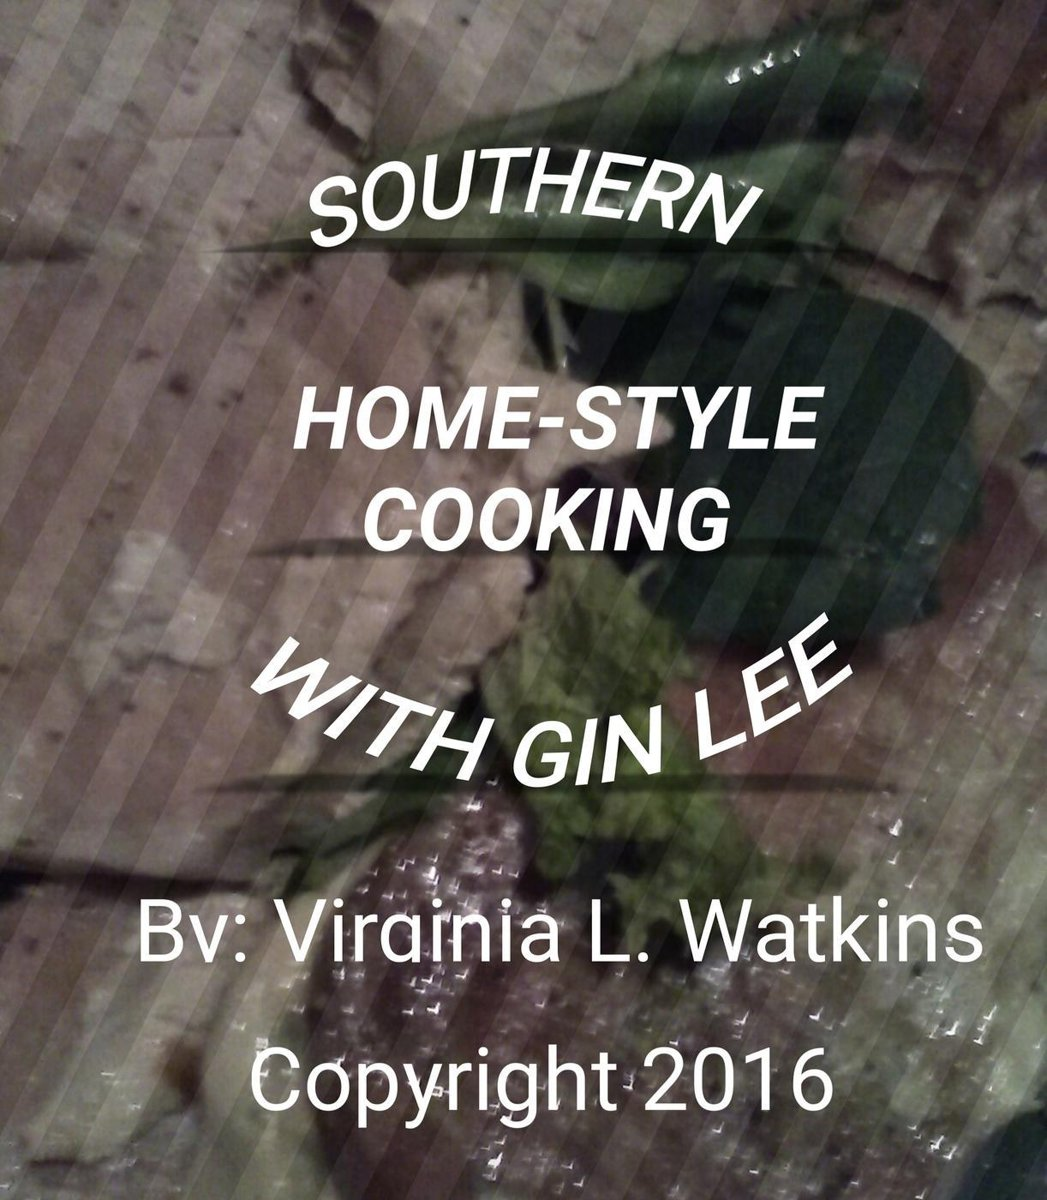 Southern Home-Style Cooking With Gin Lee